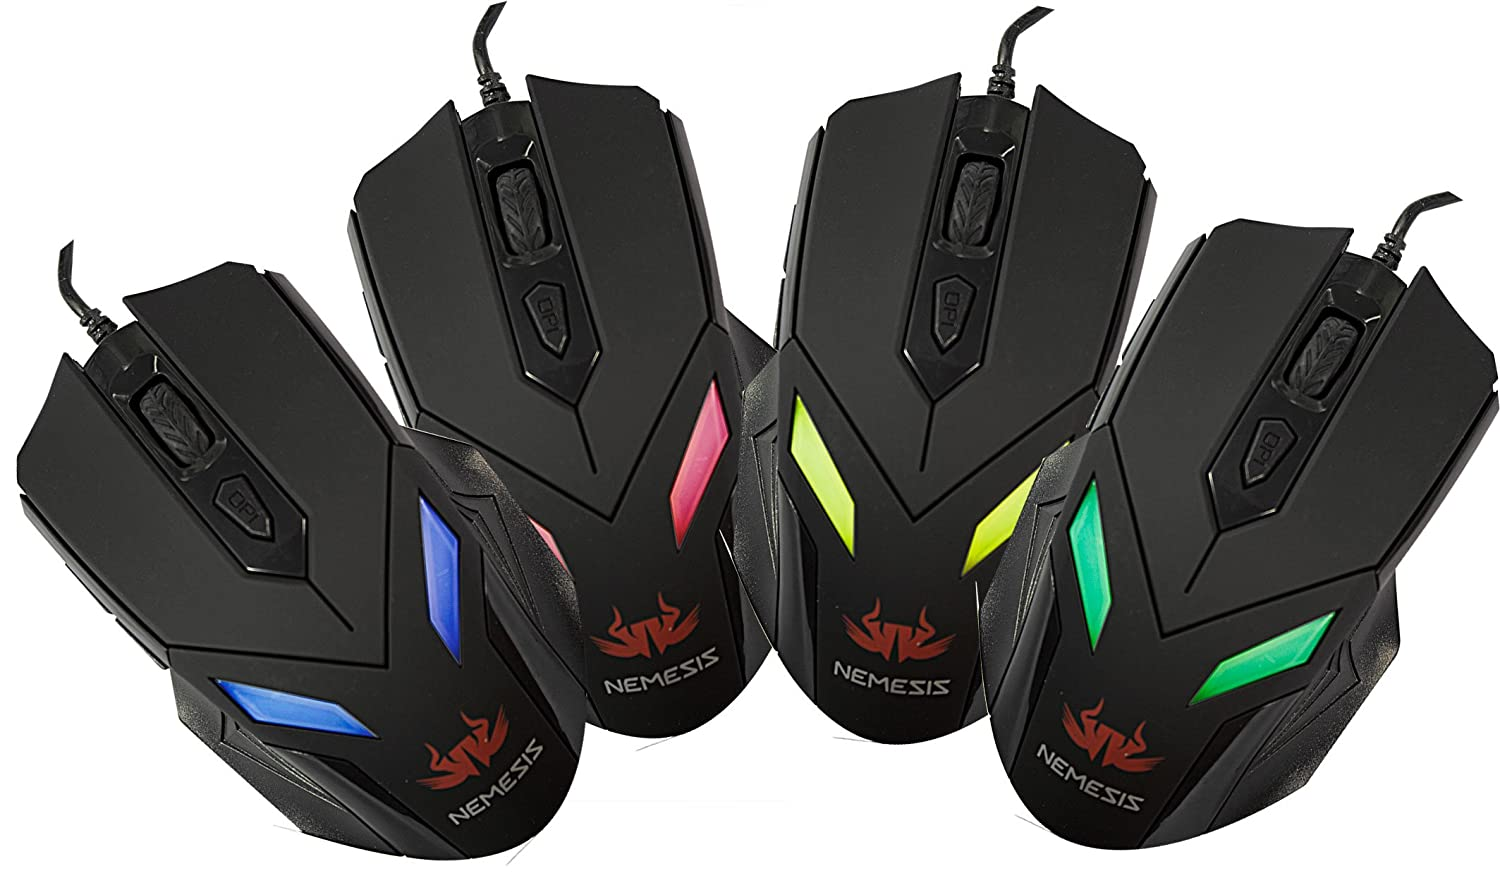 Nemesis Zark wired gaming mouse with LED light - The Must Have and ...